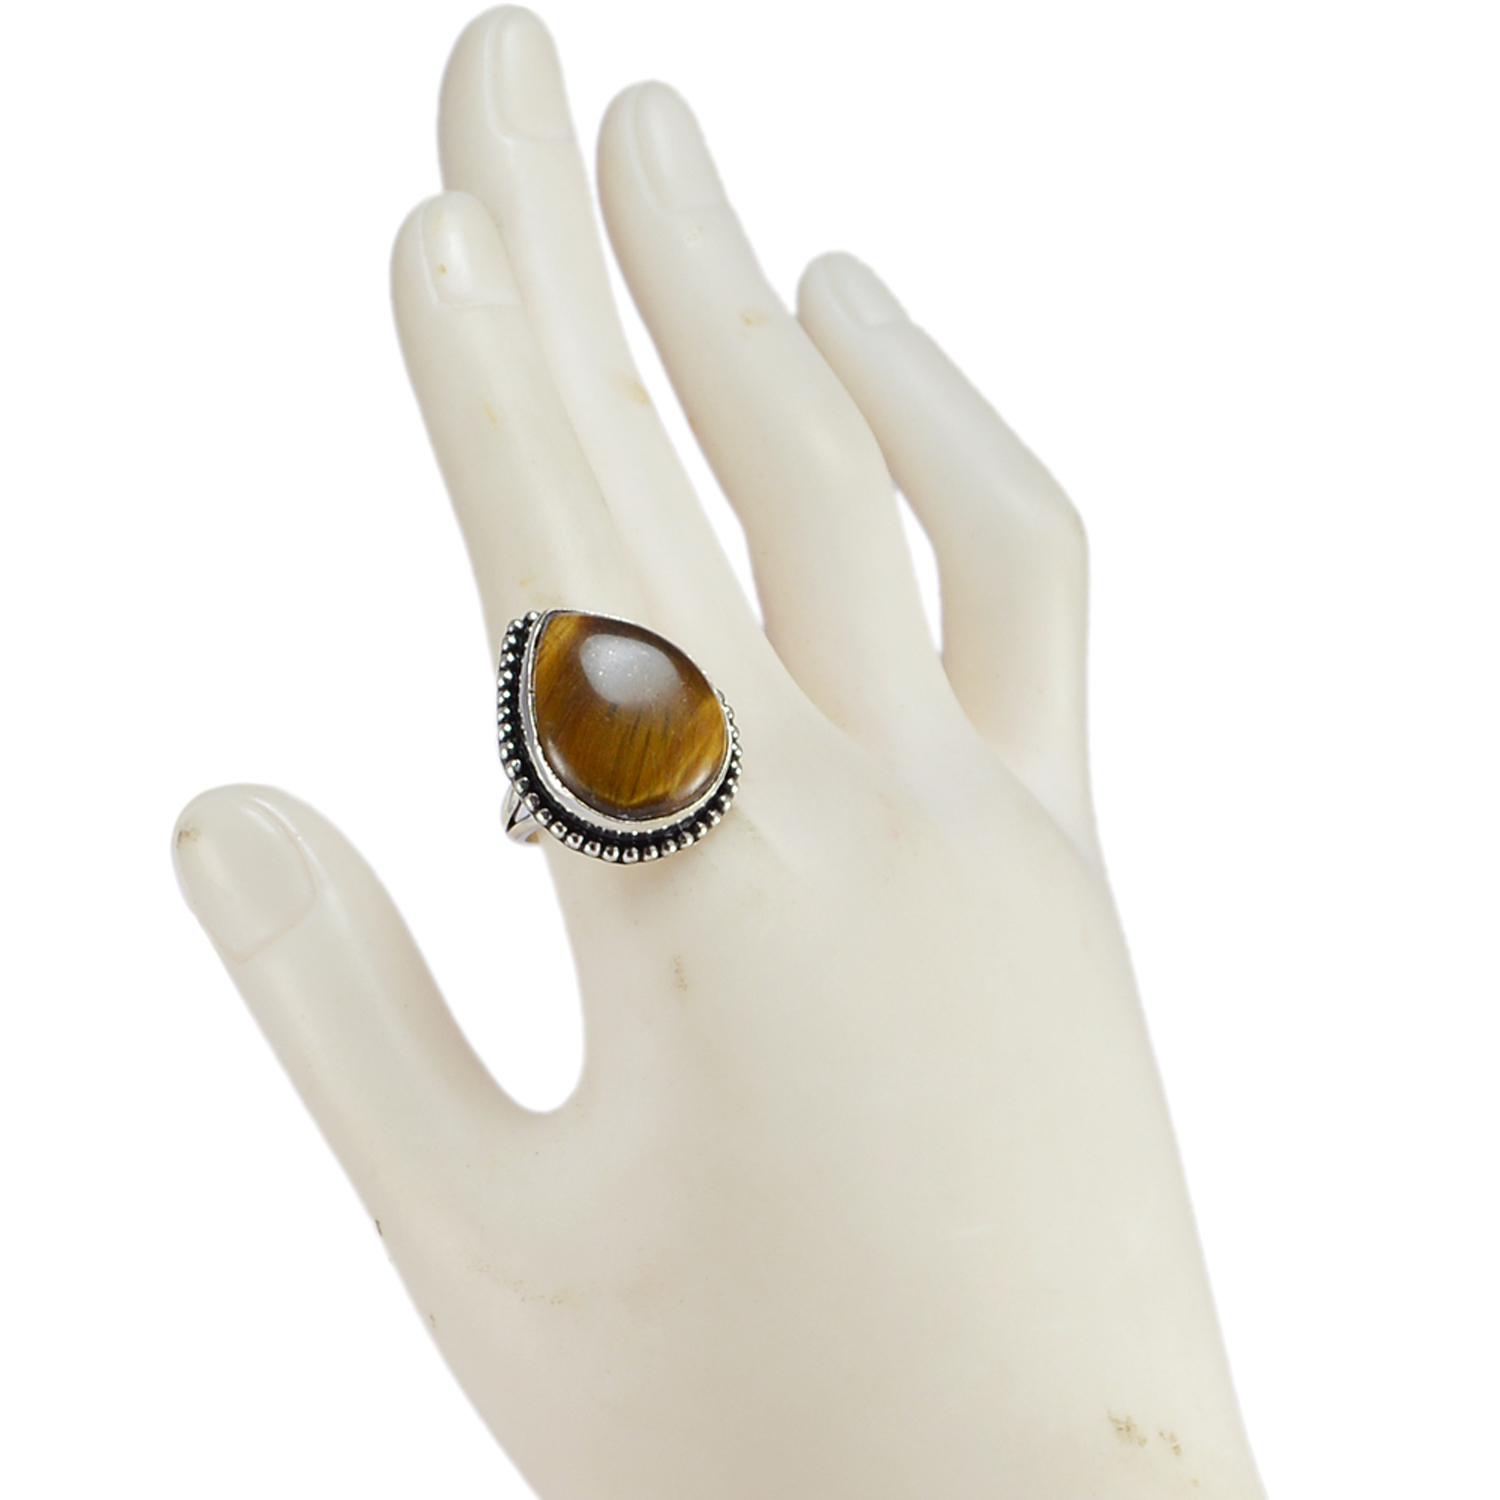 Tiger Eye Gemstone Silver Ring PG-156613